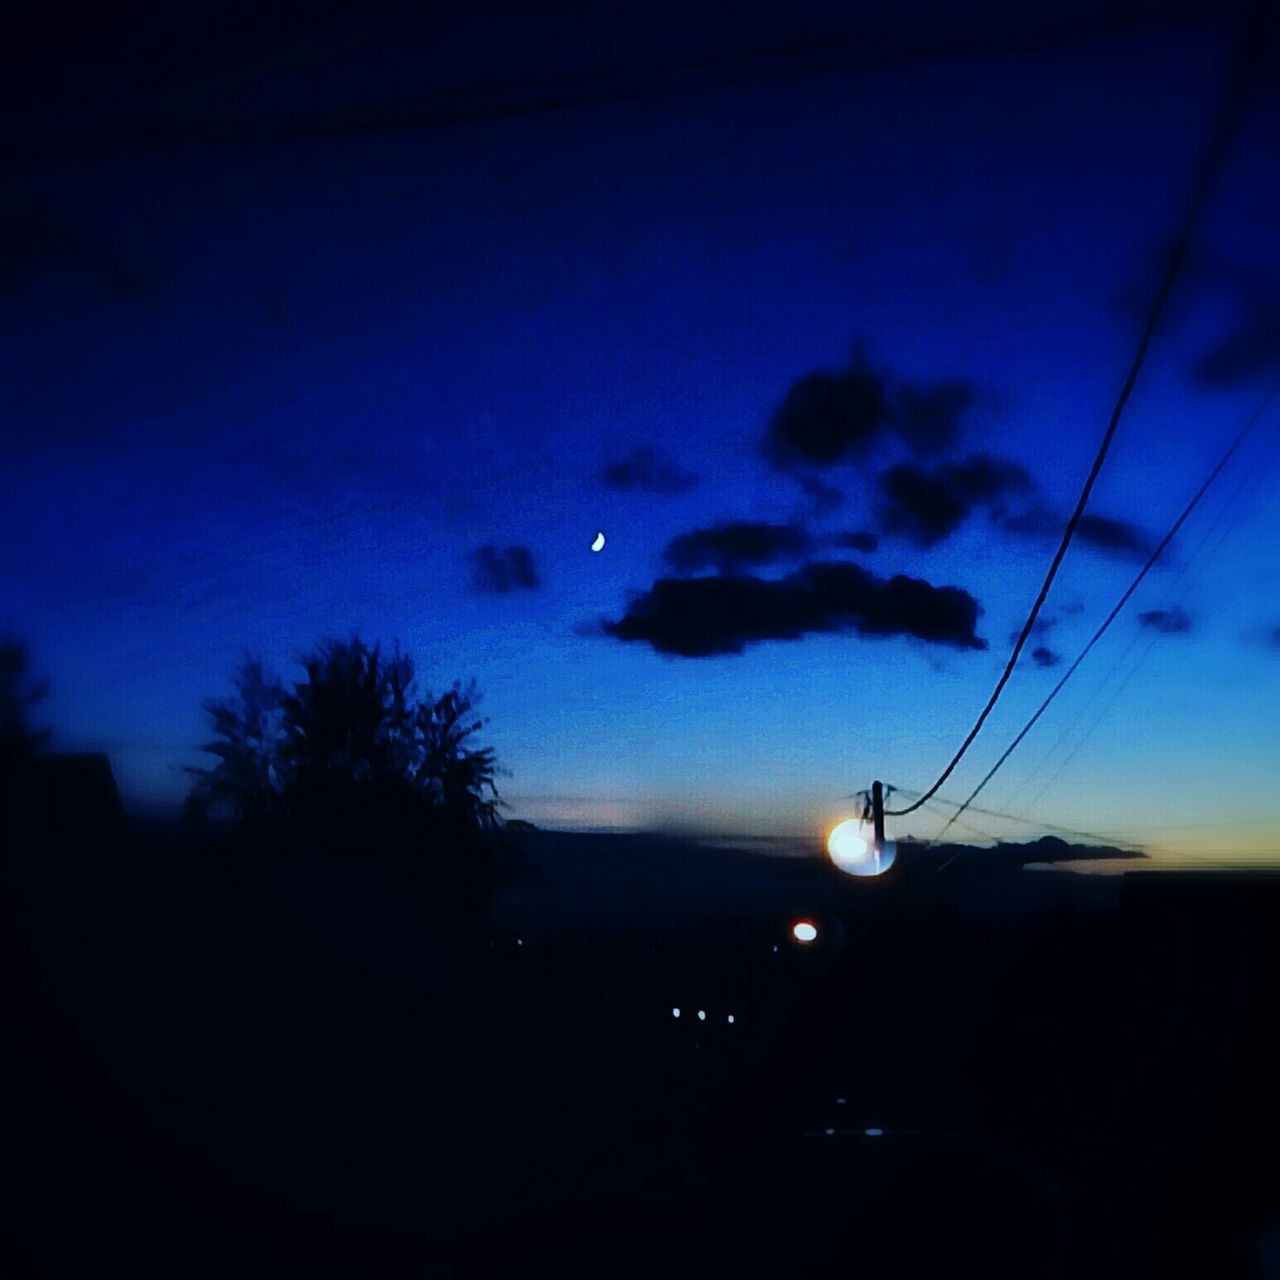 silhouette, sky, cable, nature, flying, no people, night, tree, outdoors, beauty in nature, sunset, scenics, blue, moon, water